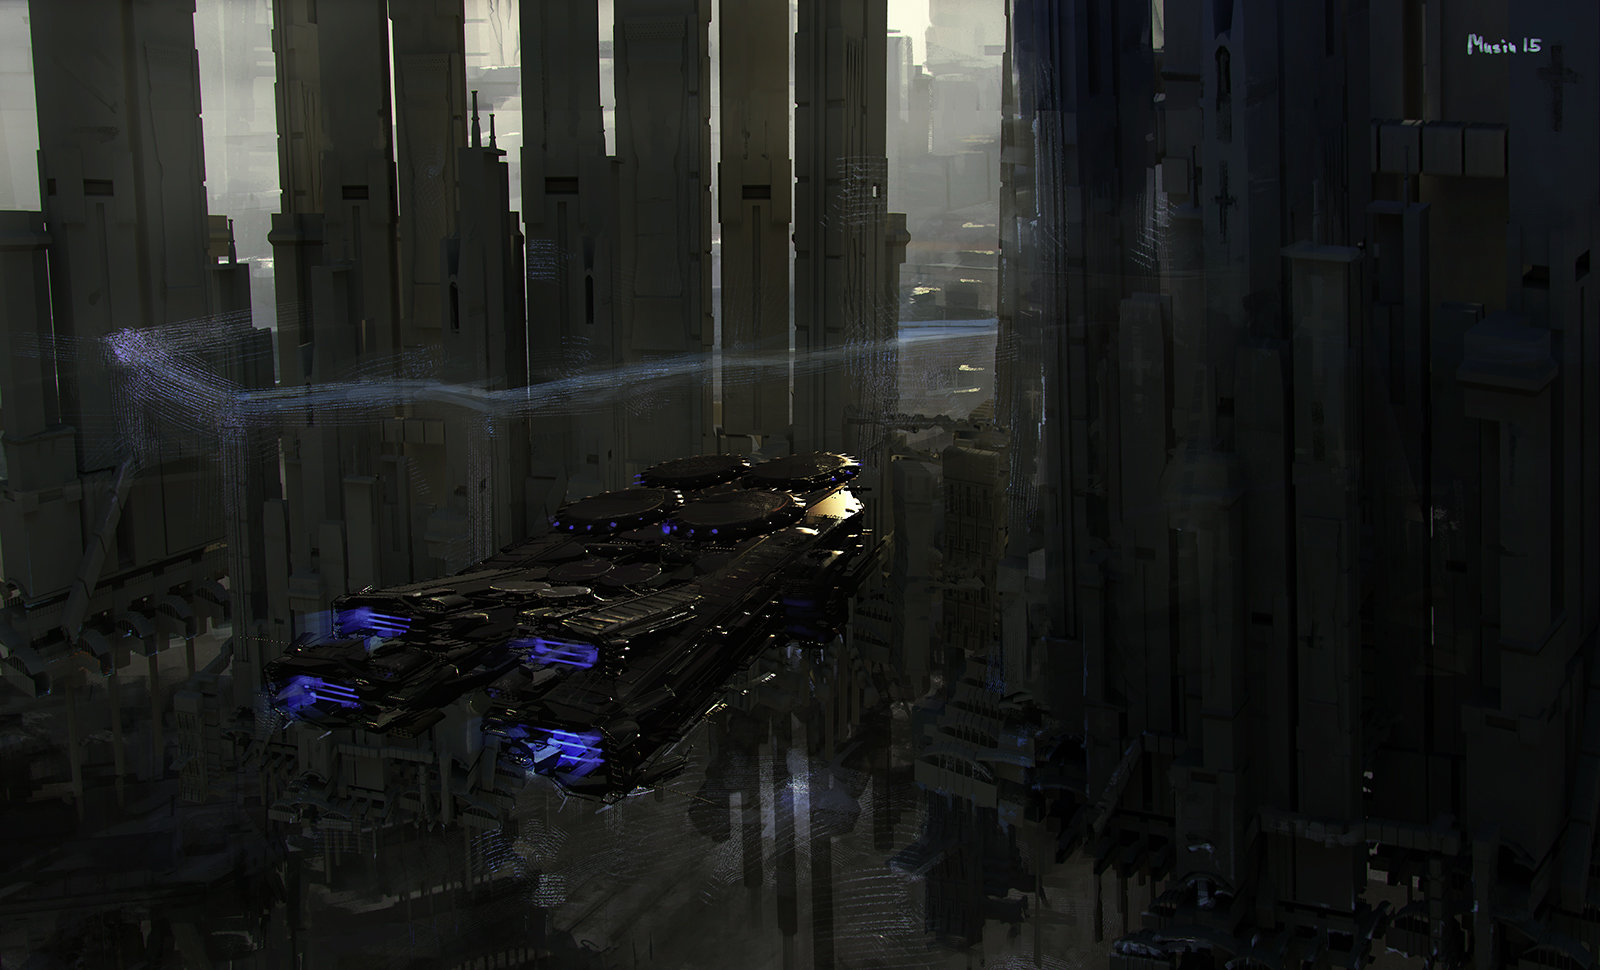 Sergey musin those lights when you leaving2